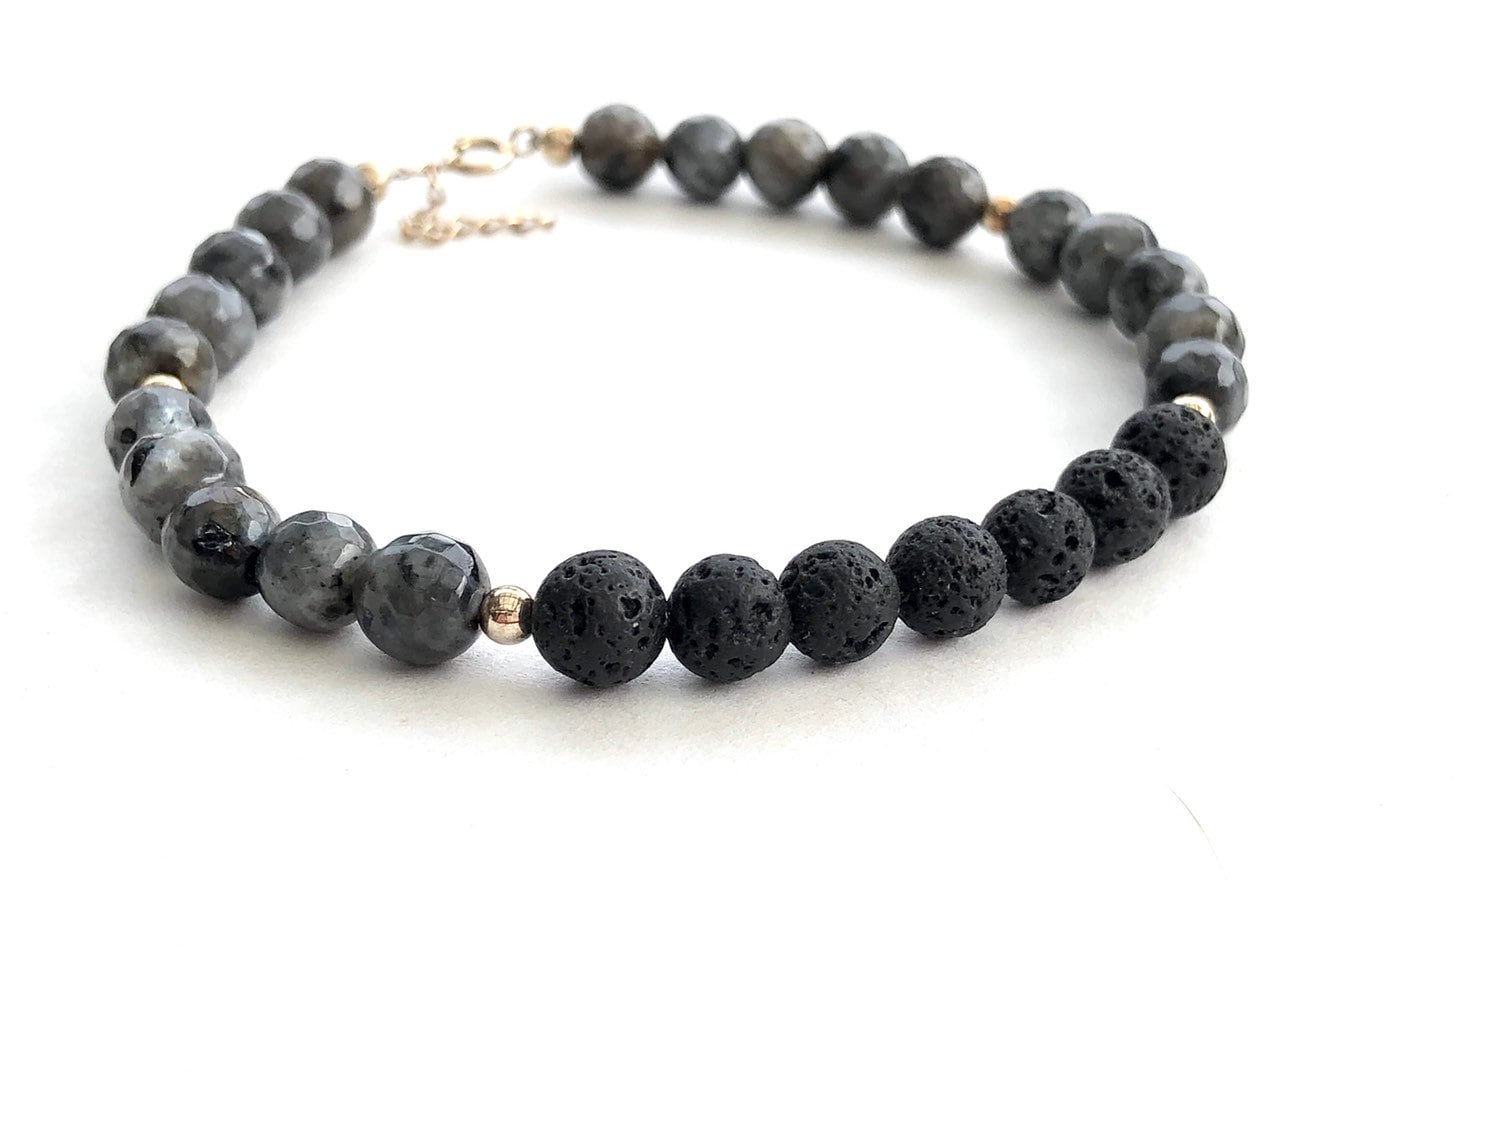 Essential Oil Lava Stone Diffusing Bracelet Aromatherapy Jewellery With Gems. Natural & Alternative Remedies Health & Beauty